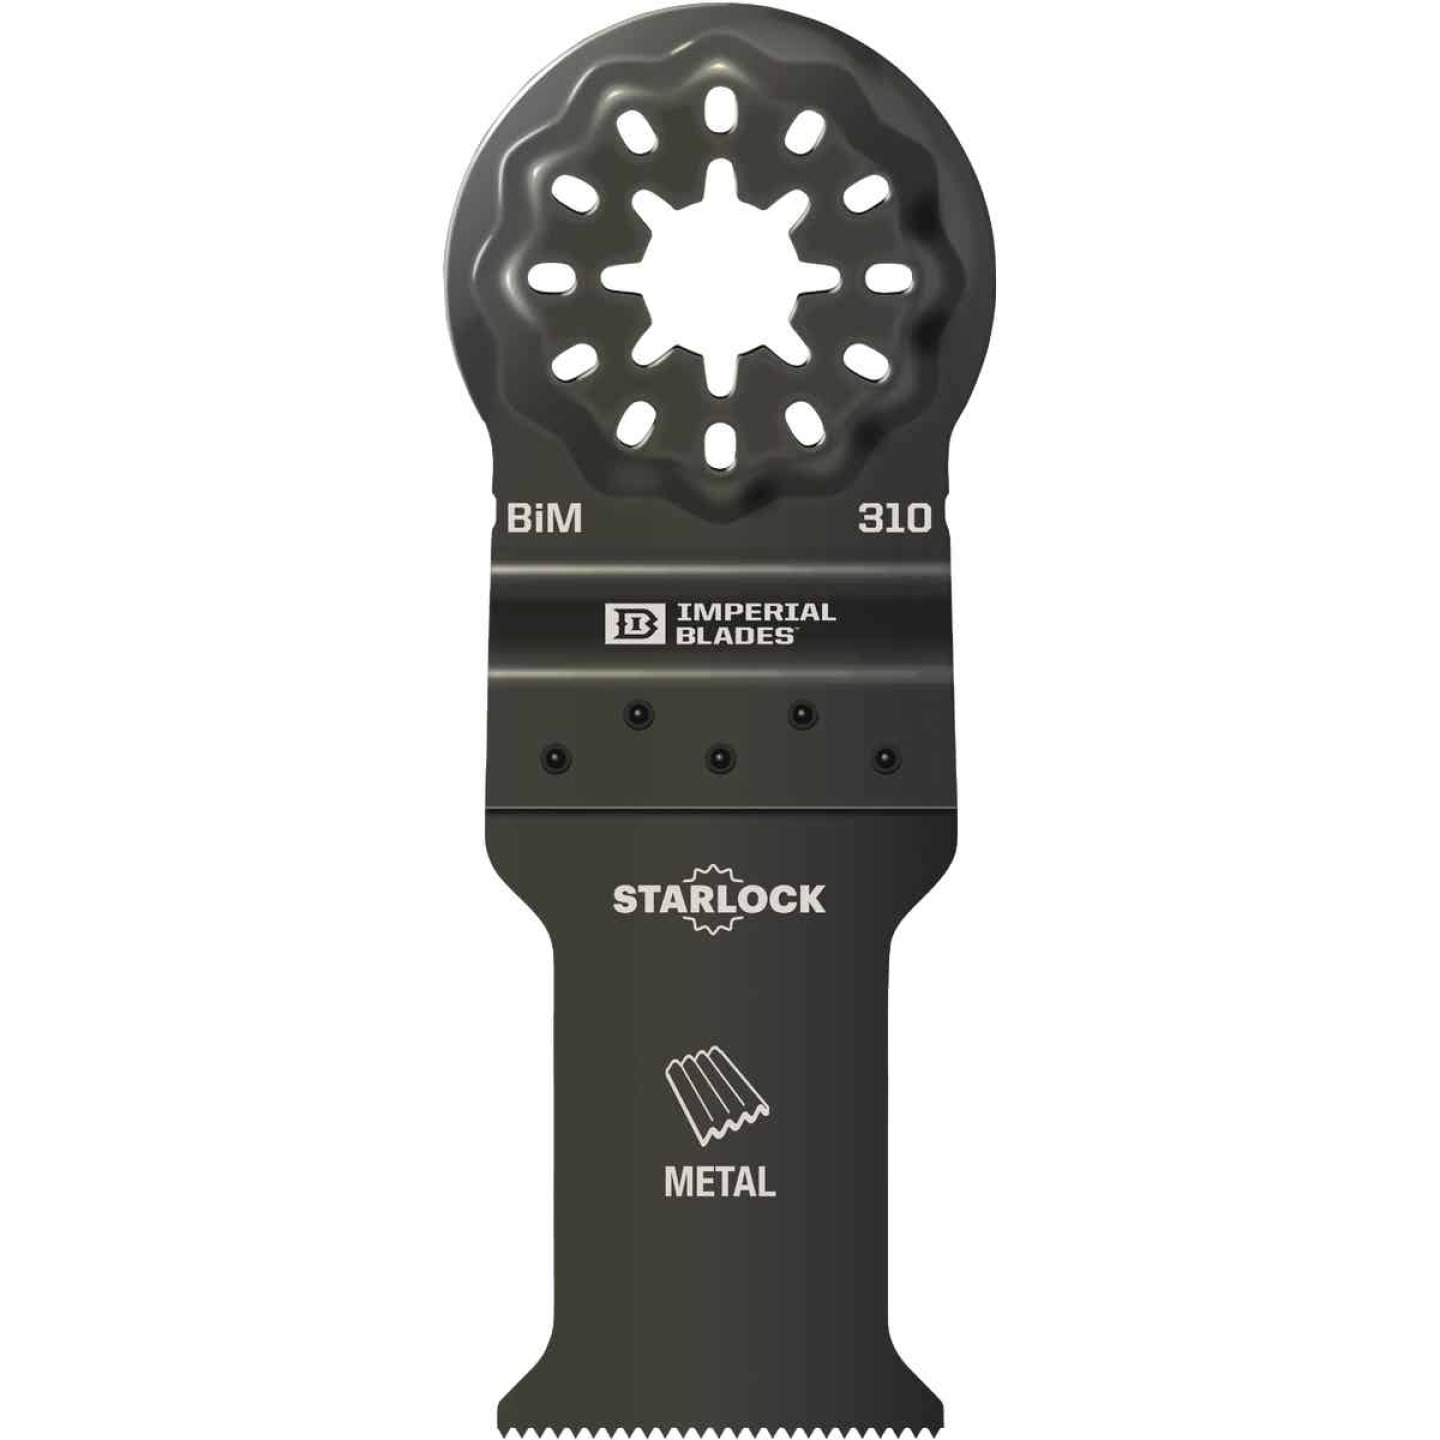 Imperial Blades Starlock 1-1/5 In. 21 TPI Metal Oscillating Blade Image 1